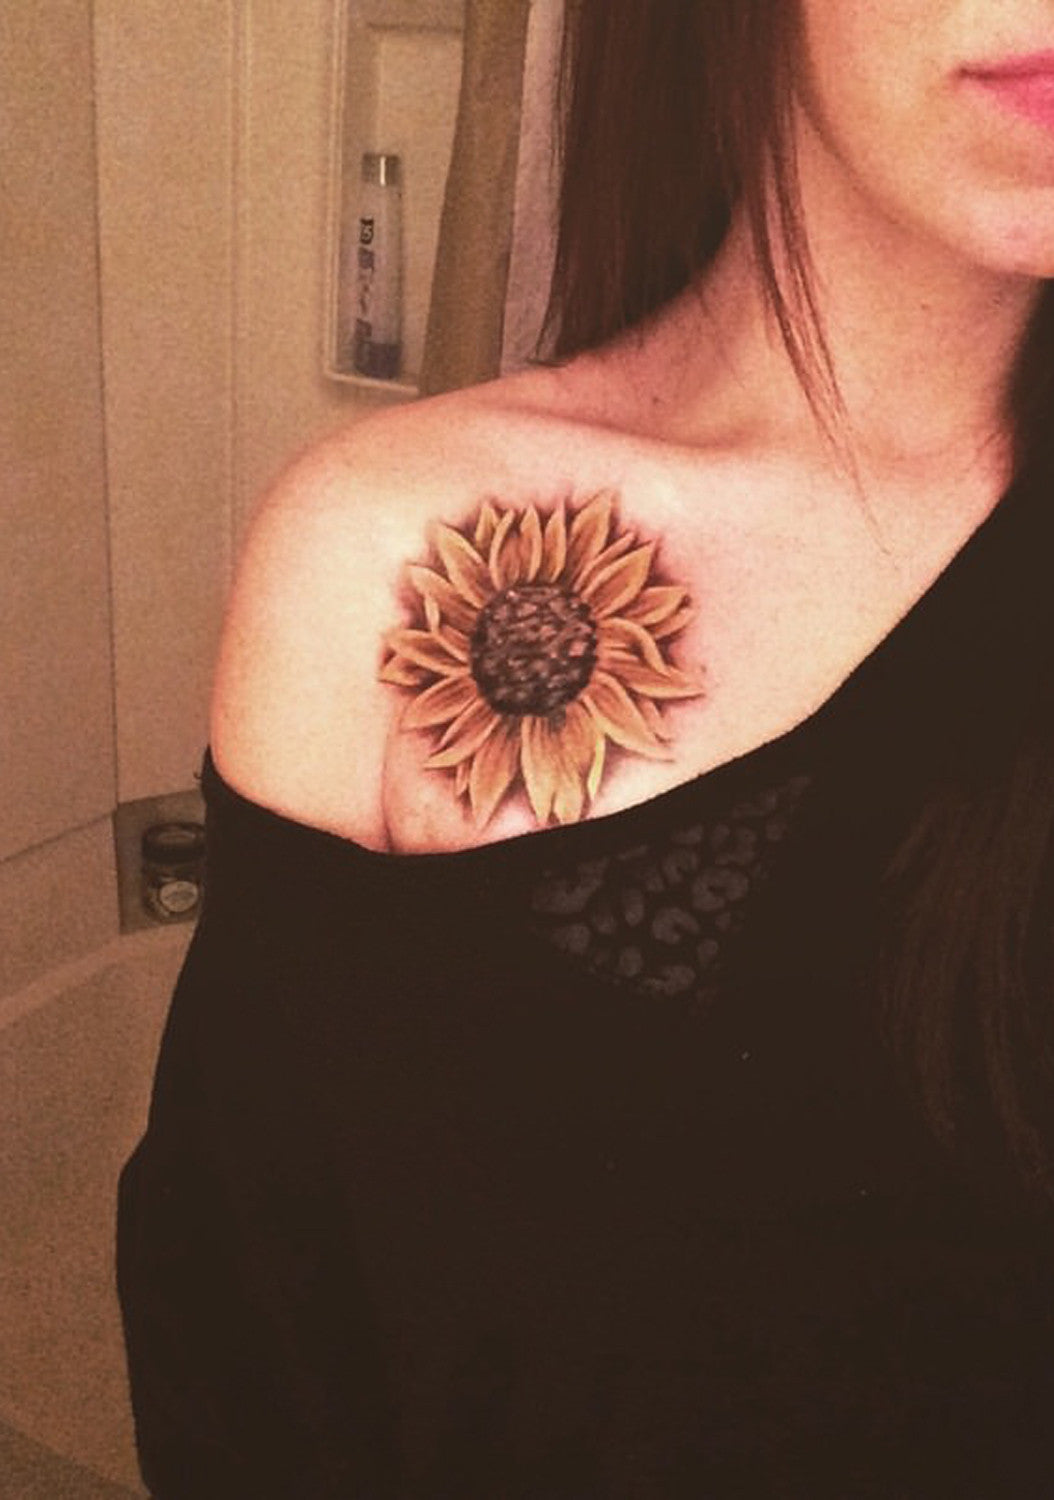 Vintage Sunflower Colored Flower On Shoulder Tattoo Ideas at MyBodiAr.com